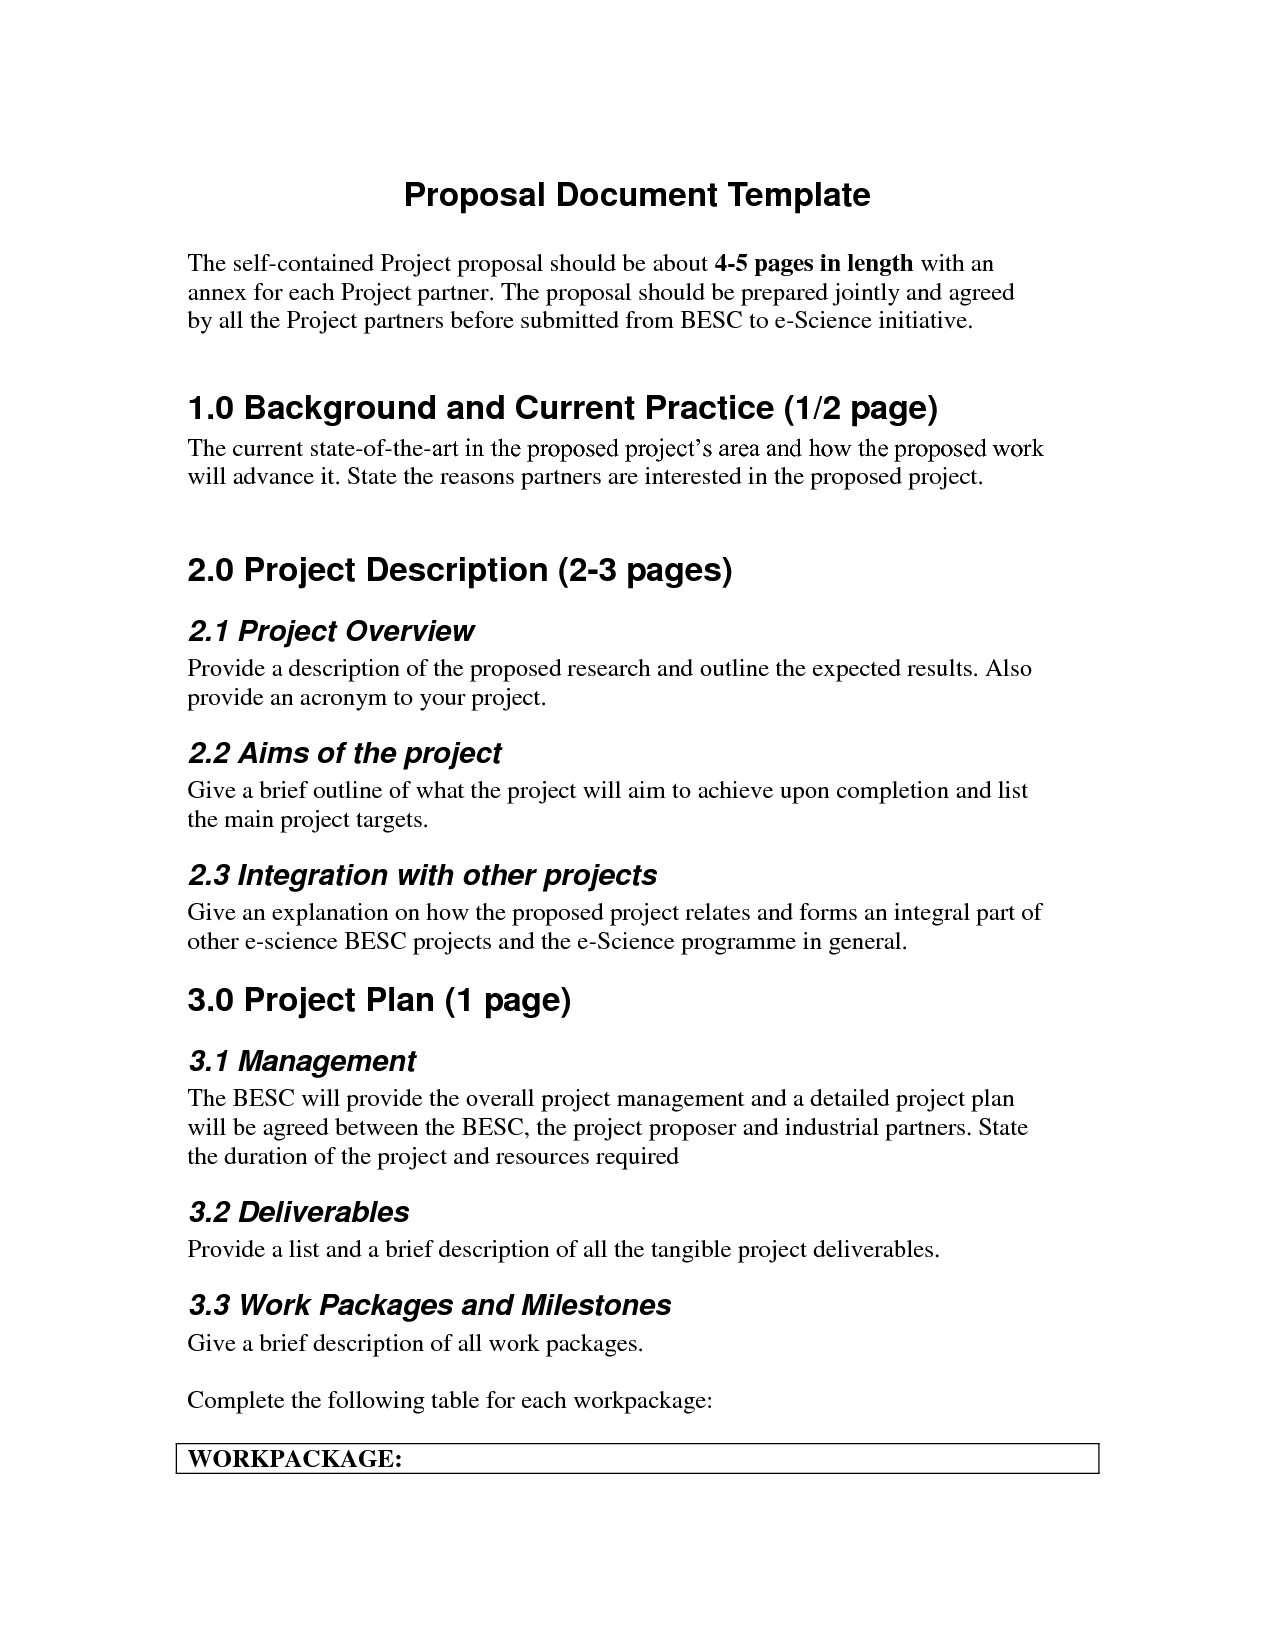 Essay On The Topic Education Essay Proposal Template Proposal Essay Topics Before Students Write A  College Research Paper How To Organize A Compare And Contrast Essay also Persausive Essays Essay Proposal Template Proposal Essay Topics Before Students  Persuasive Essay On School Uniforms